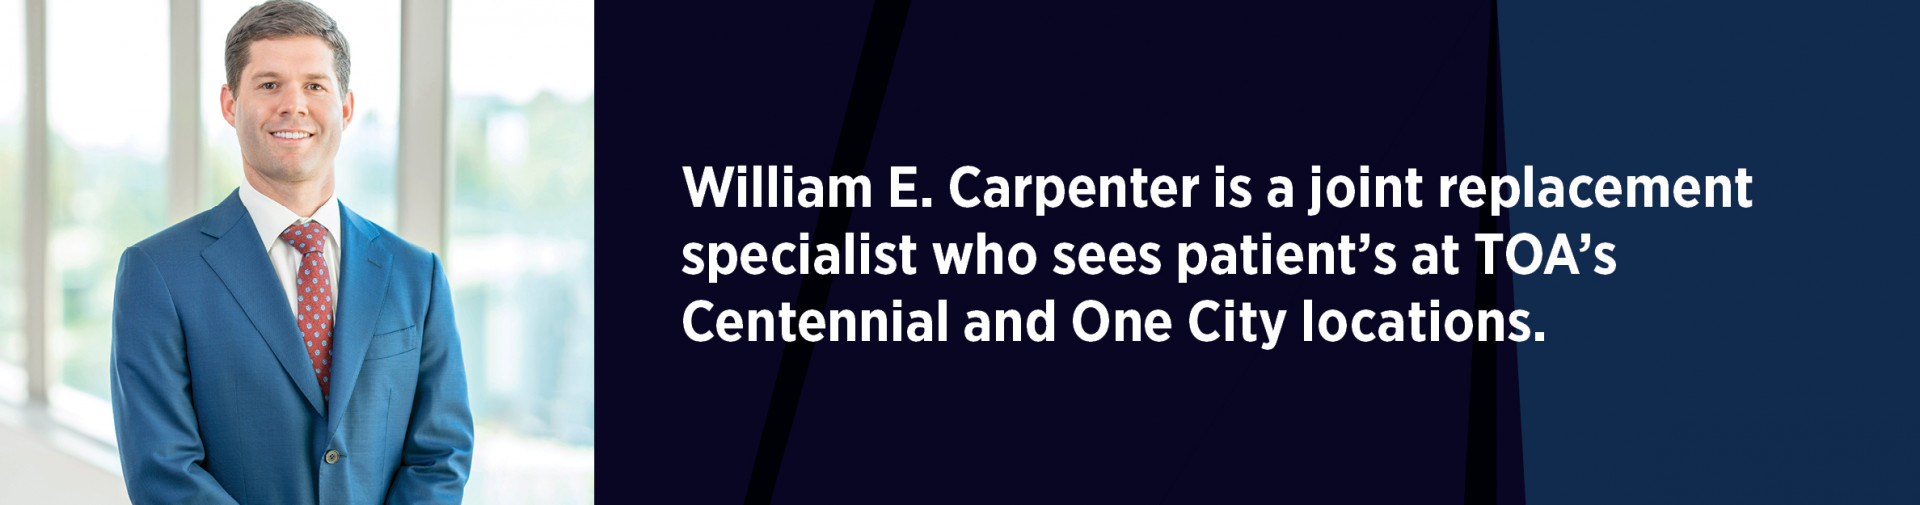 William E. Carpentar